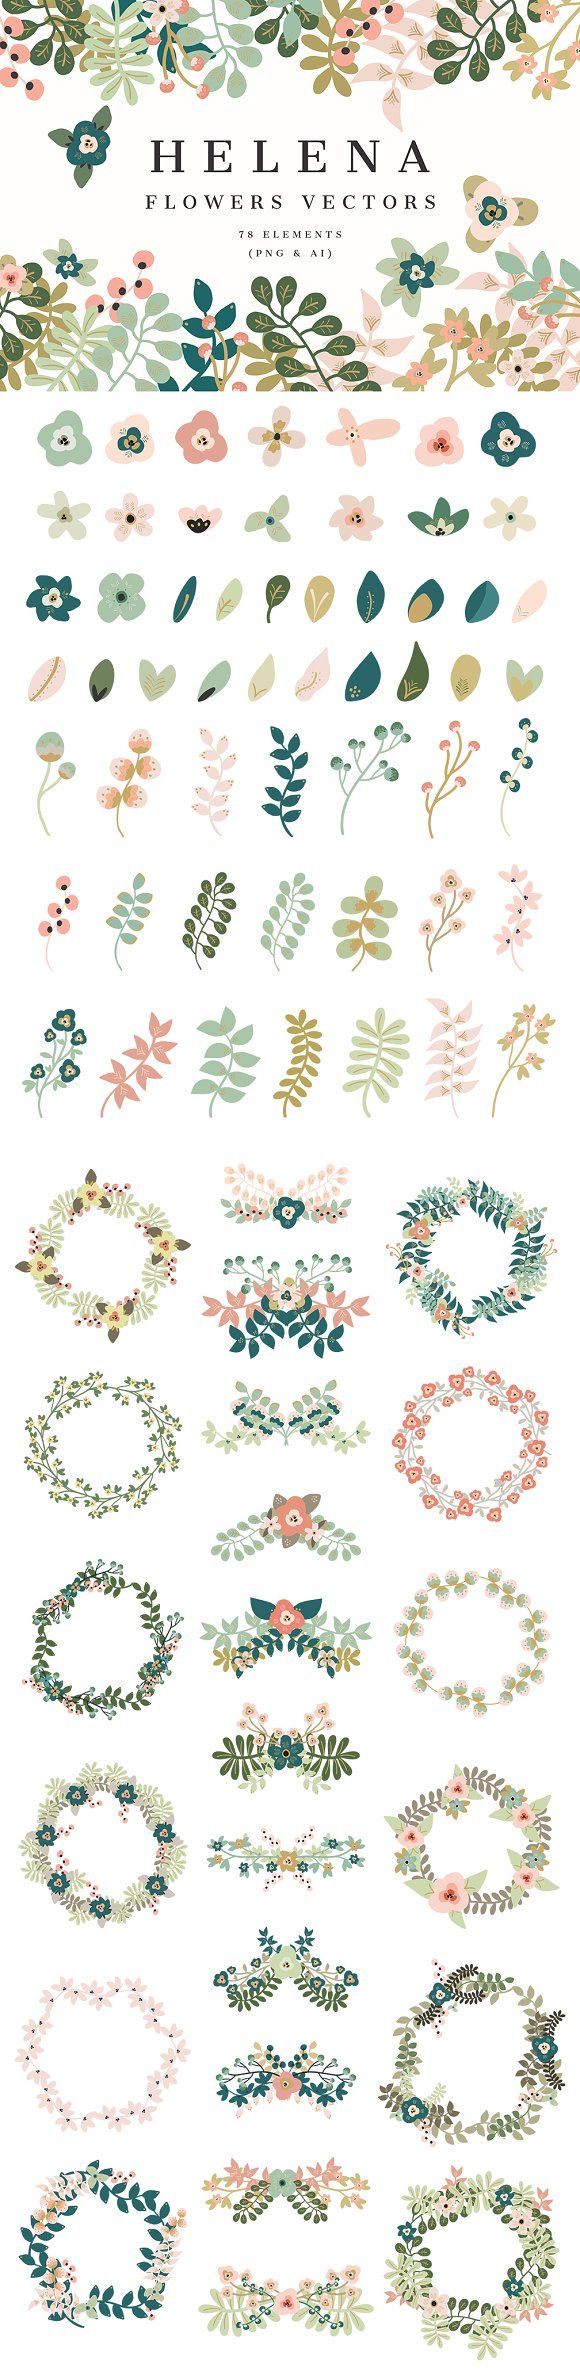 Helena -Flowers Vectors by Cliche Graphique on @creativemarket